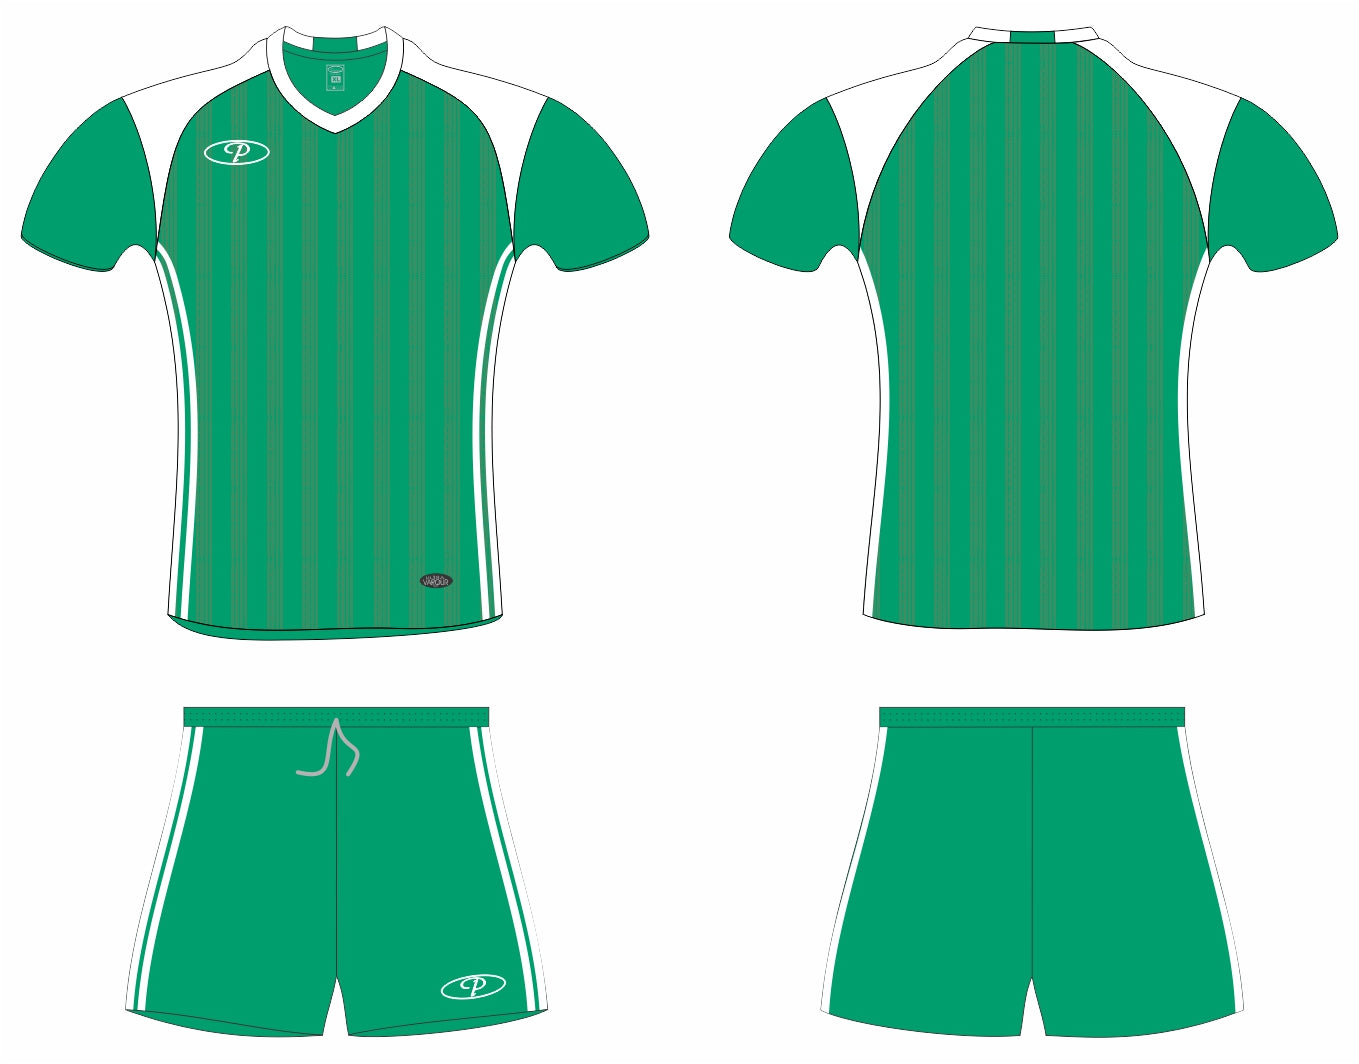 6293f3a8cd0 Bulk   Full Kits - Premier Madrid Soccer Kit Senior - Emerald Green ...